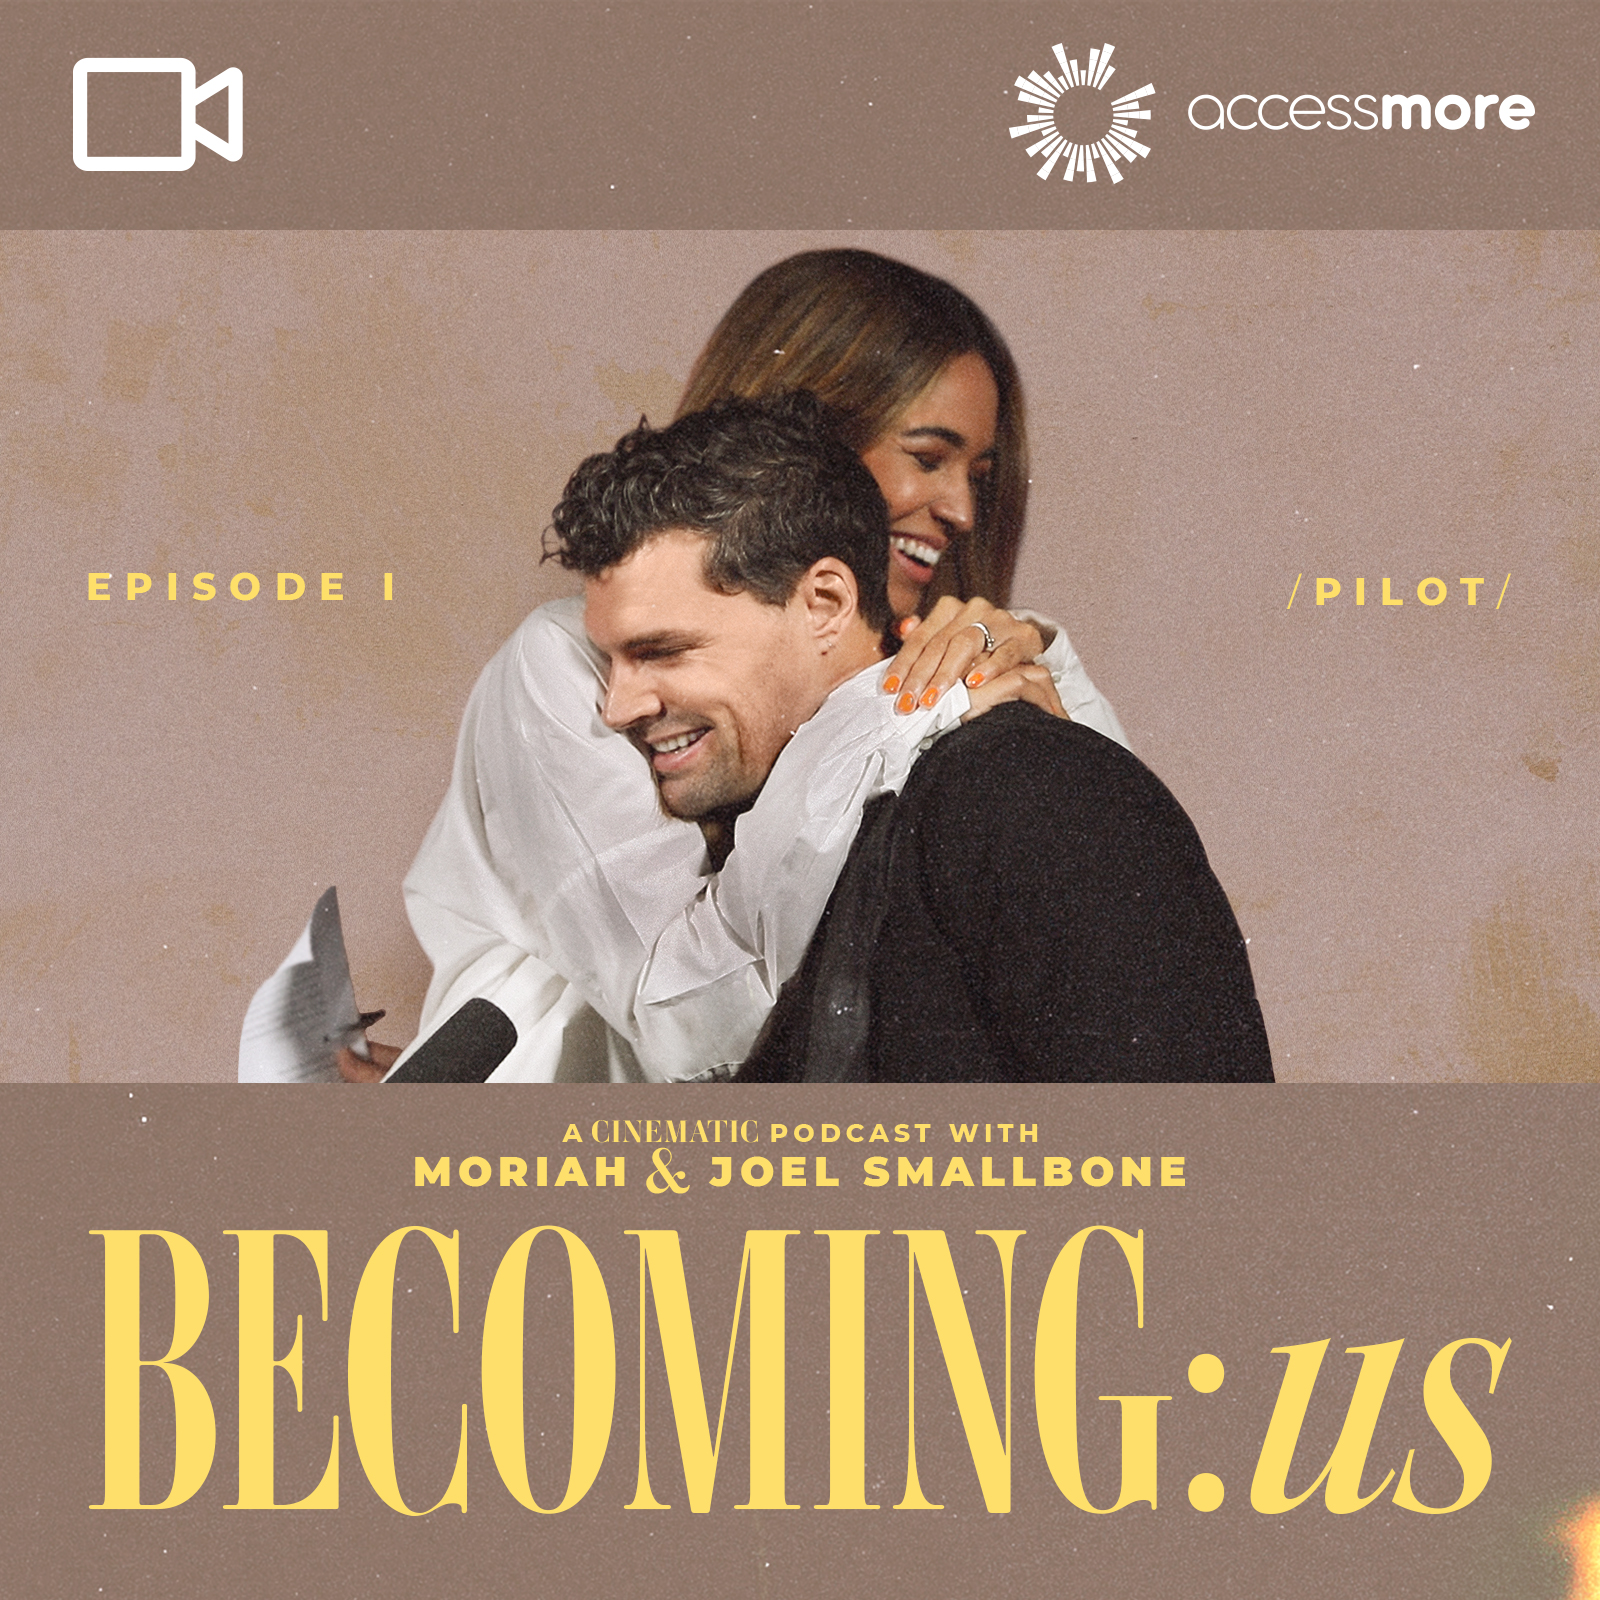 Exclusive First Look!  BECOMING:us A Cinematic Podcast with Moriah & Joel Smallbone